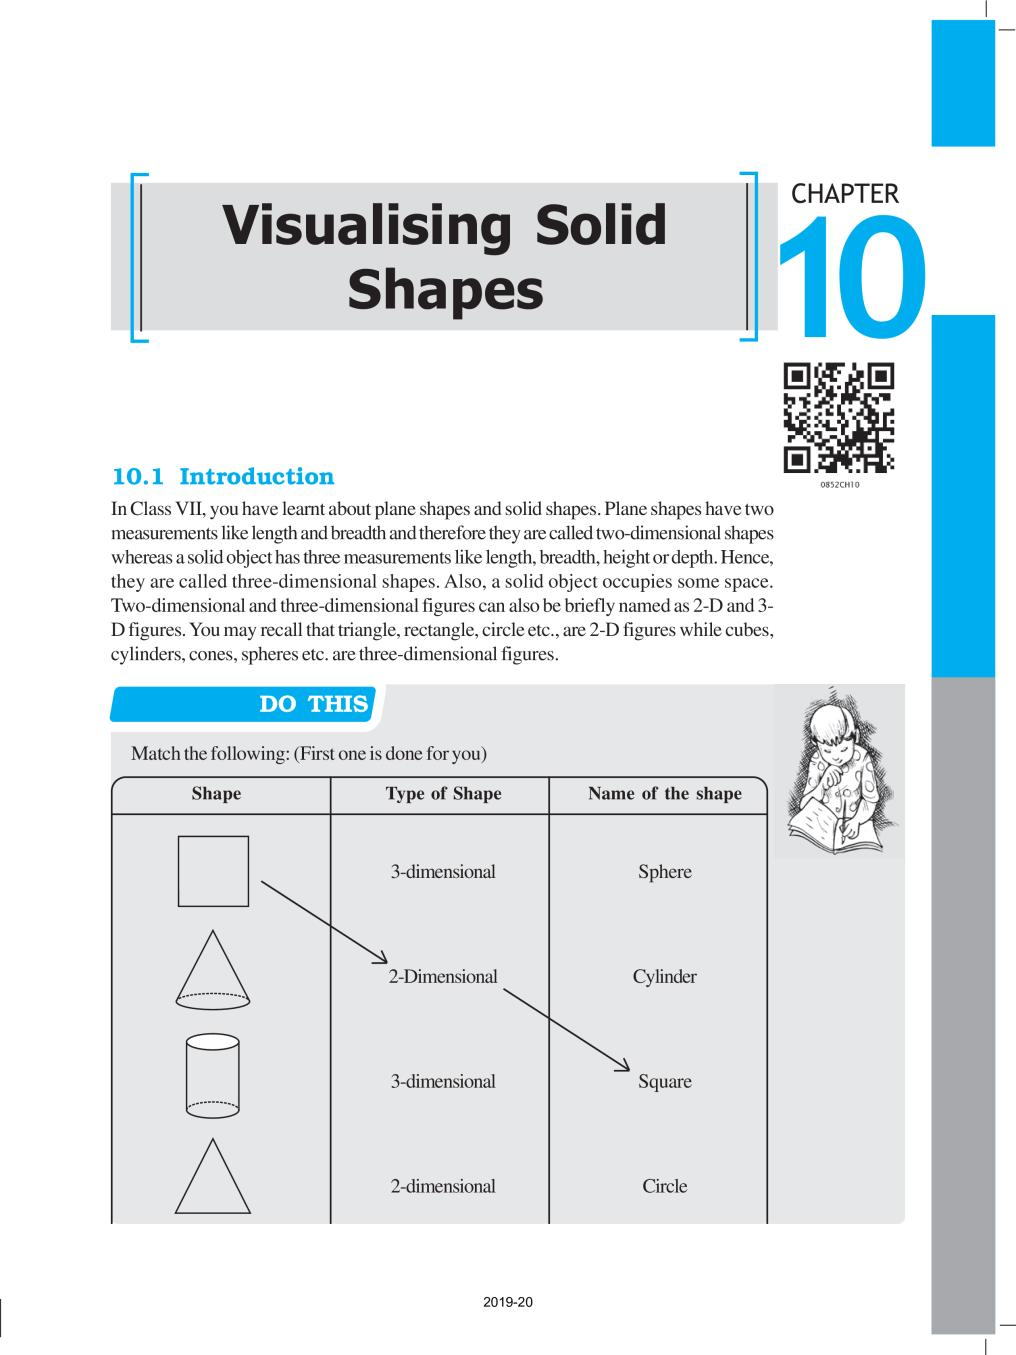 NCERT Book Class 8 Maths Chapter 10 Visualising Solid Shapes